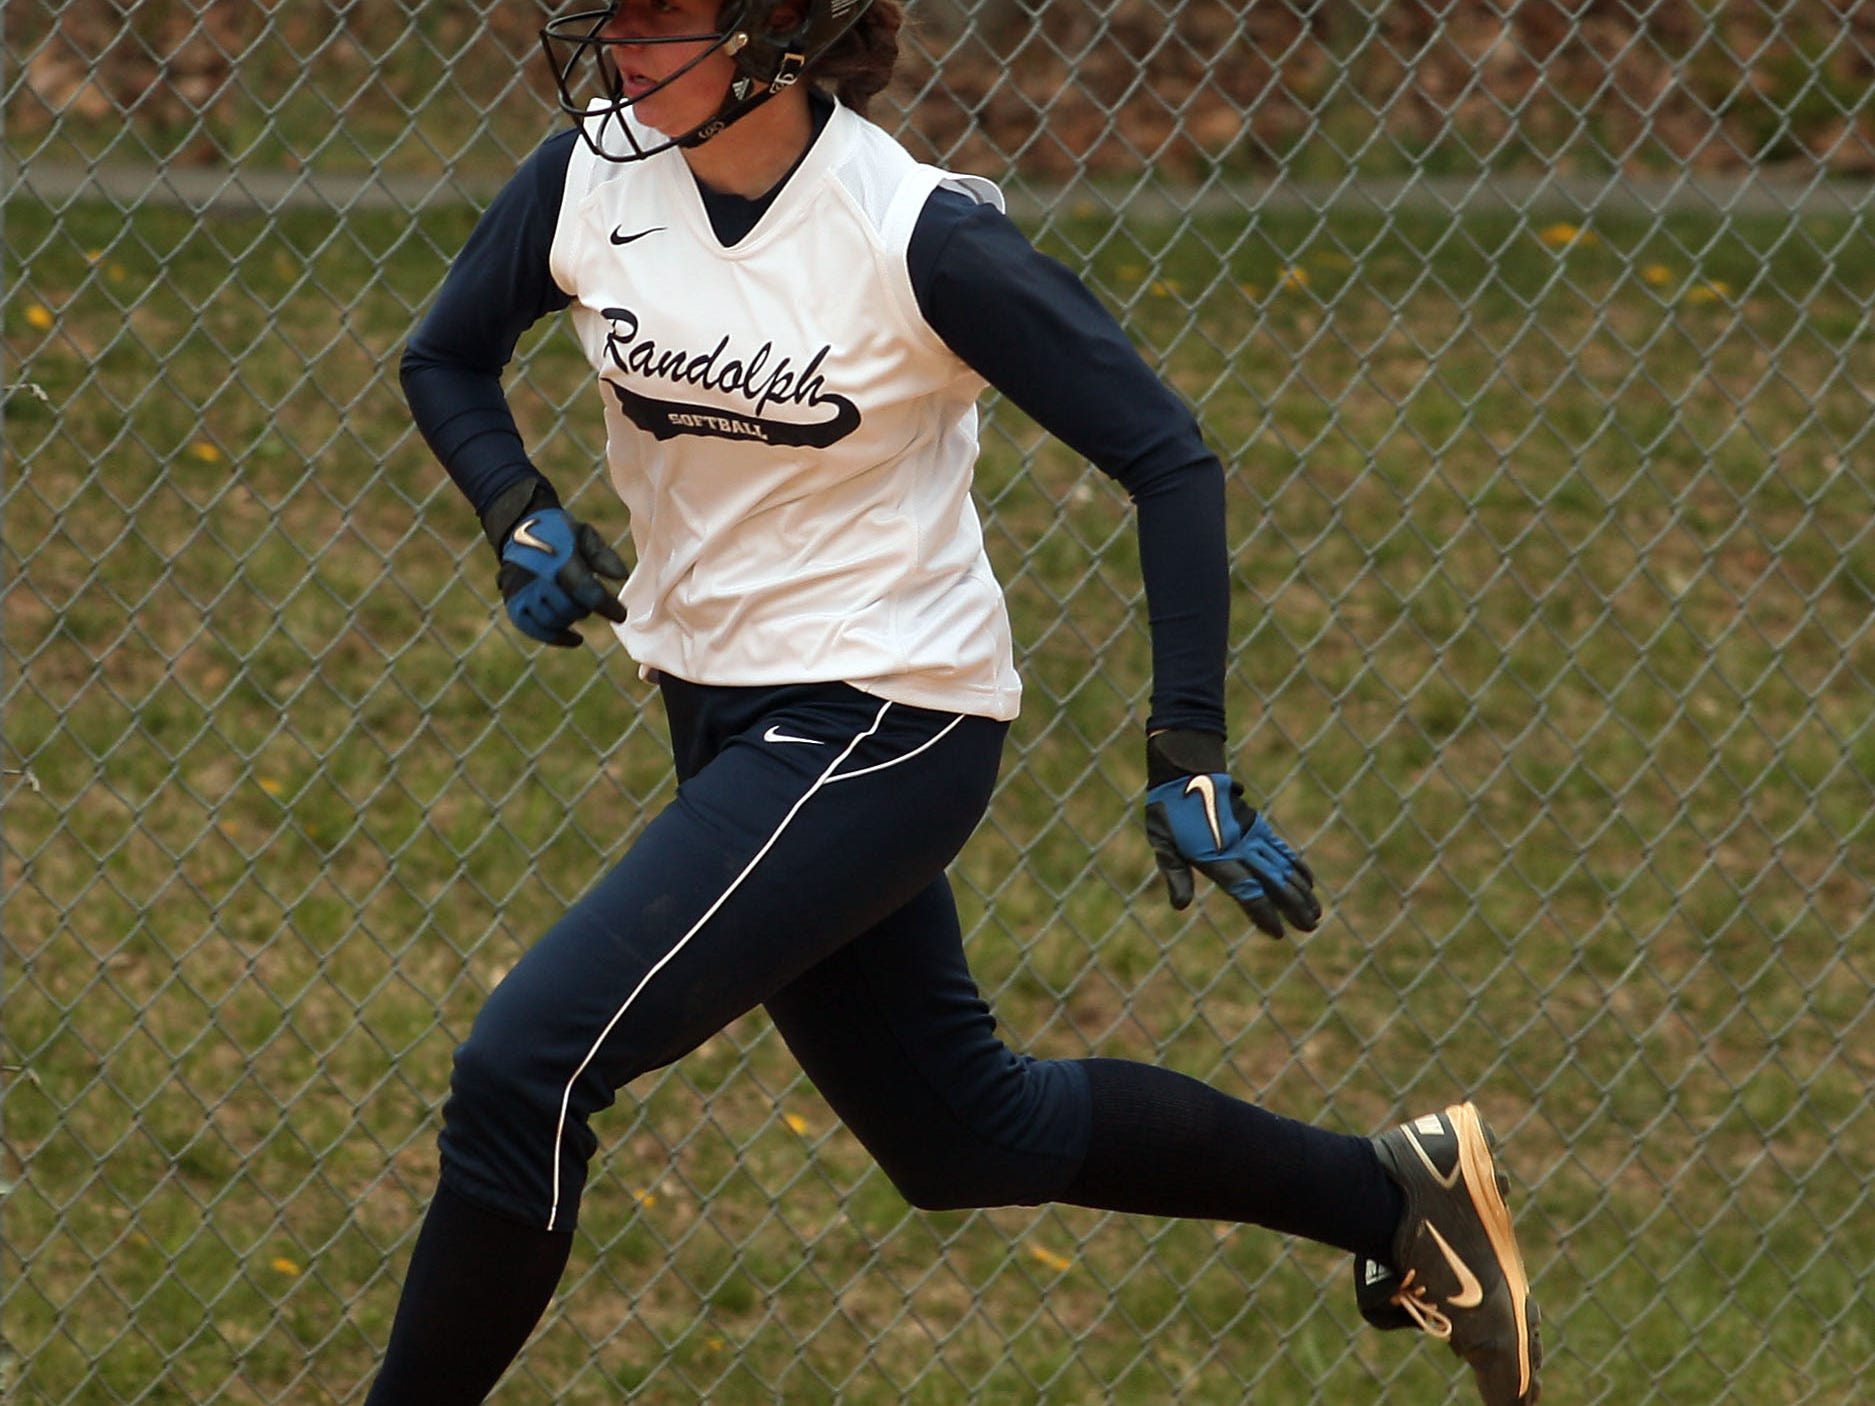 Randolph's Cynthia Meringer rounds third after hitting a home run.